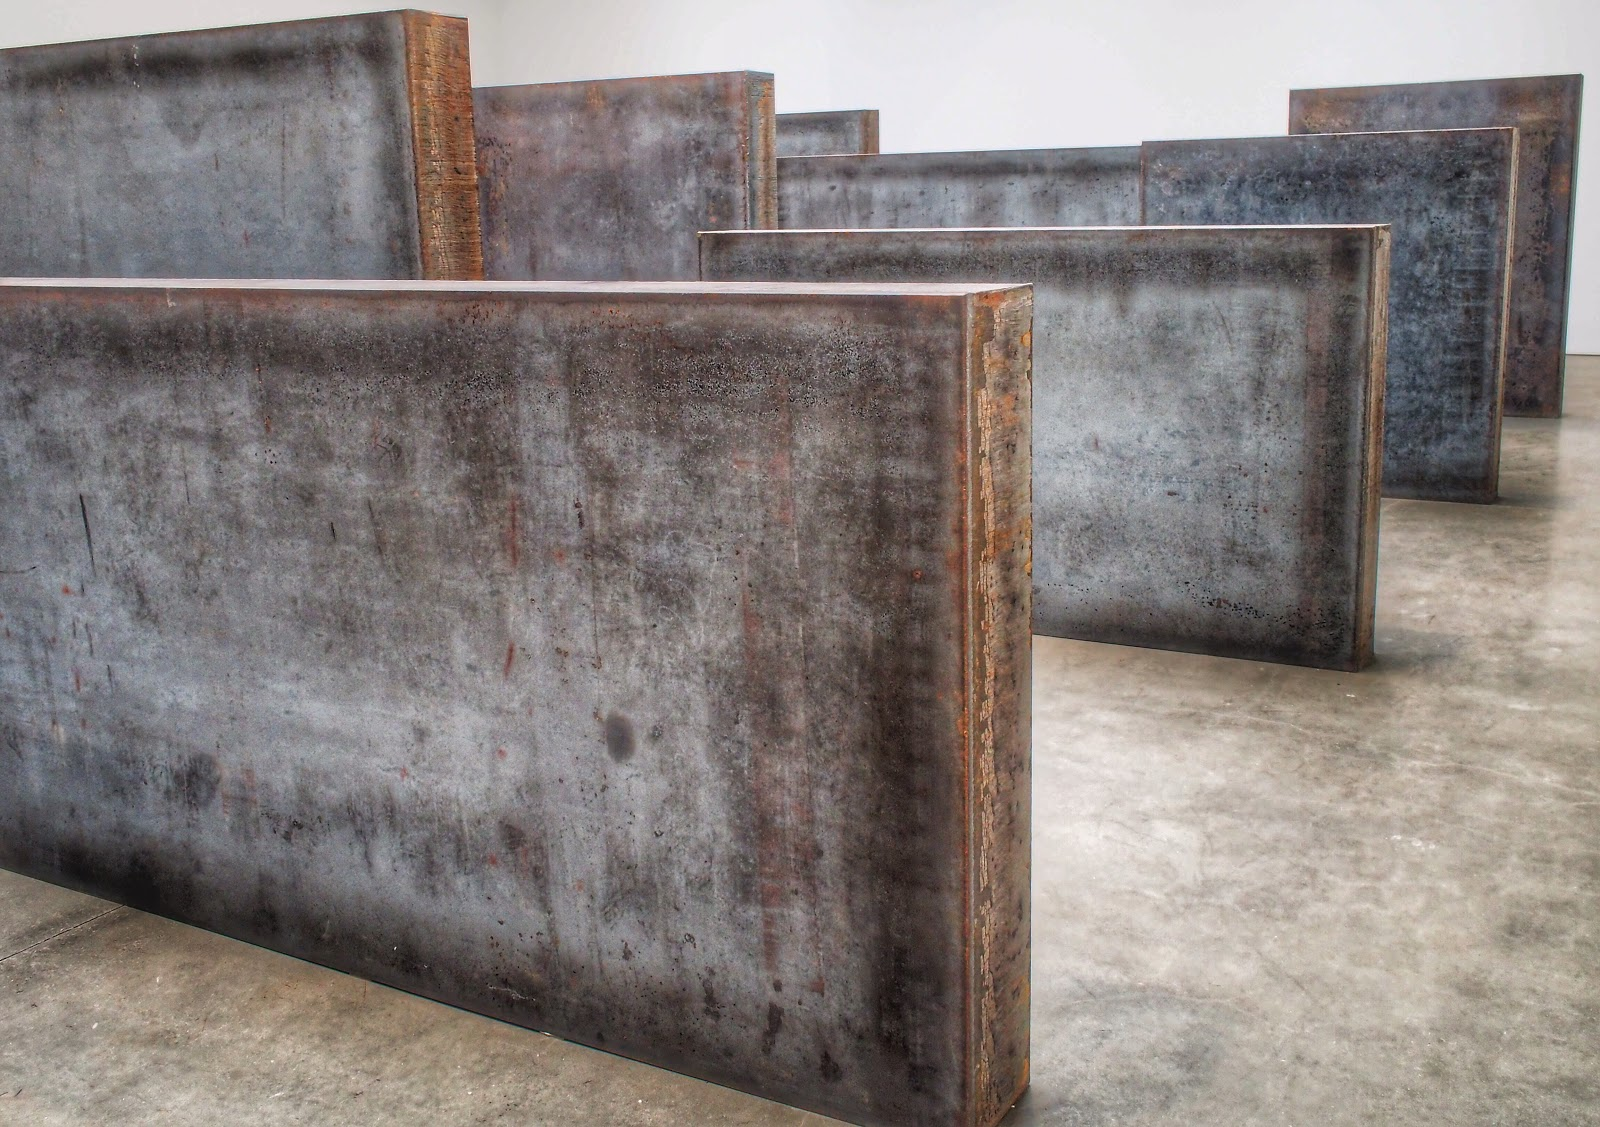 Intervals :: Richard Serra, Expedition #RichardSerra #NYC 2013